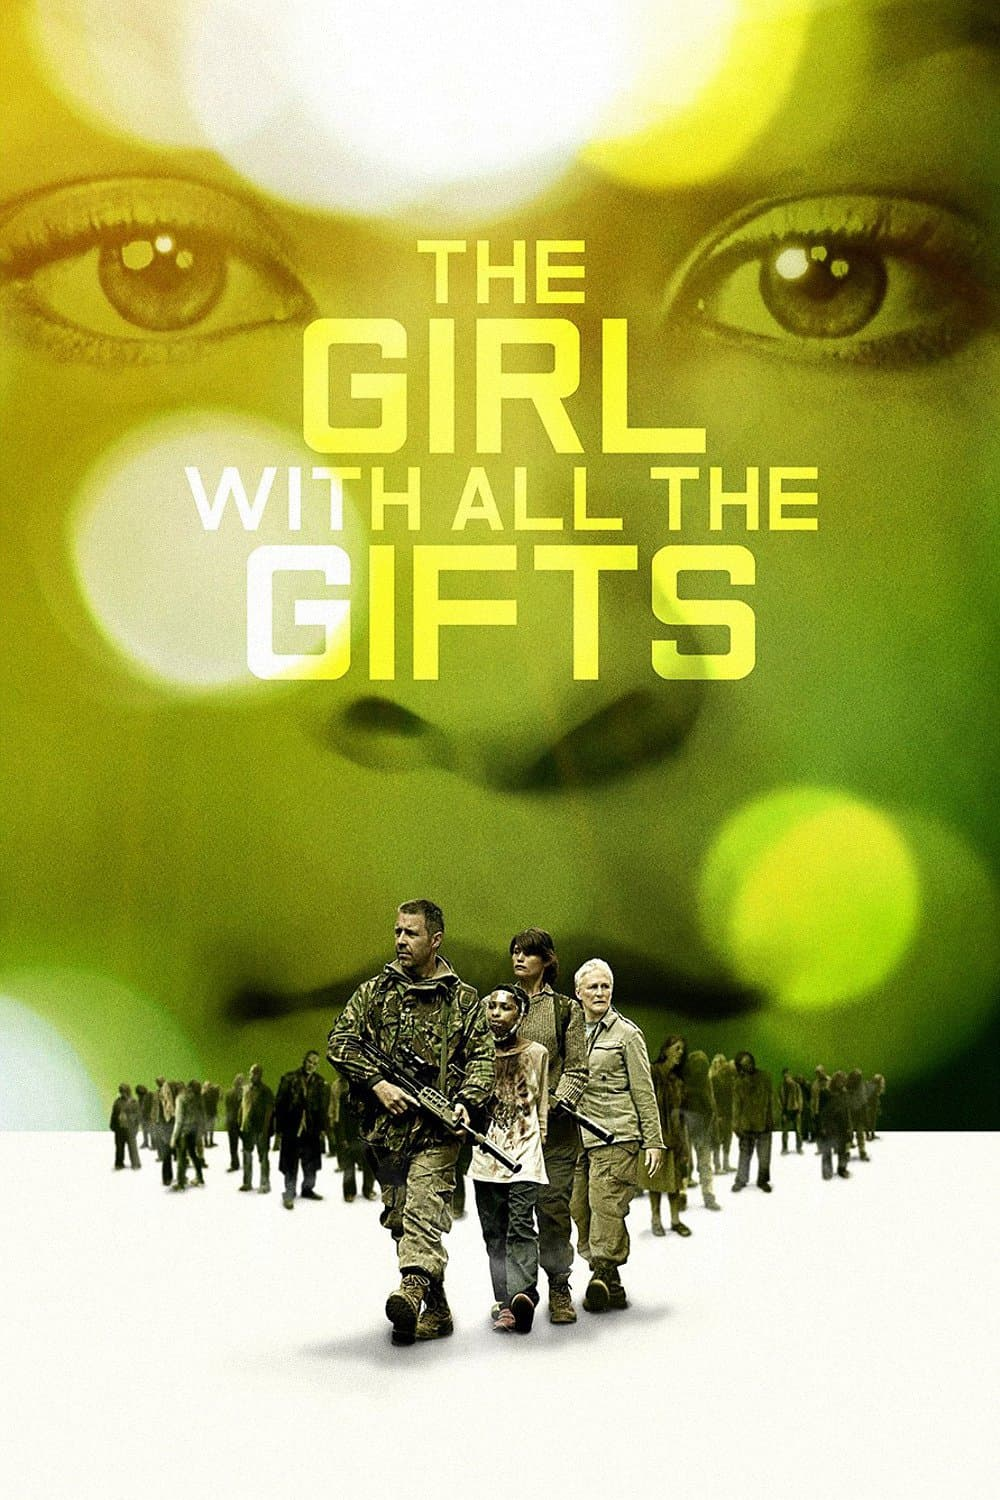 The Girl with All the Gifts, 2016